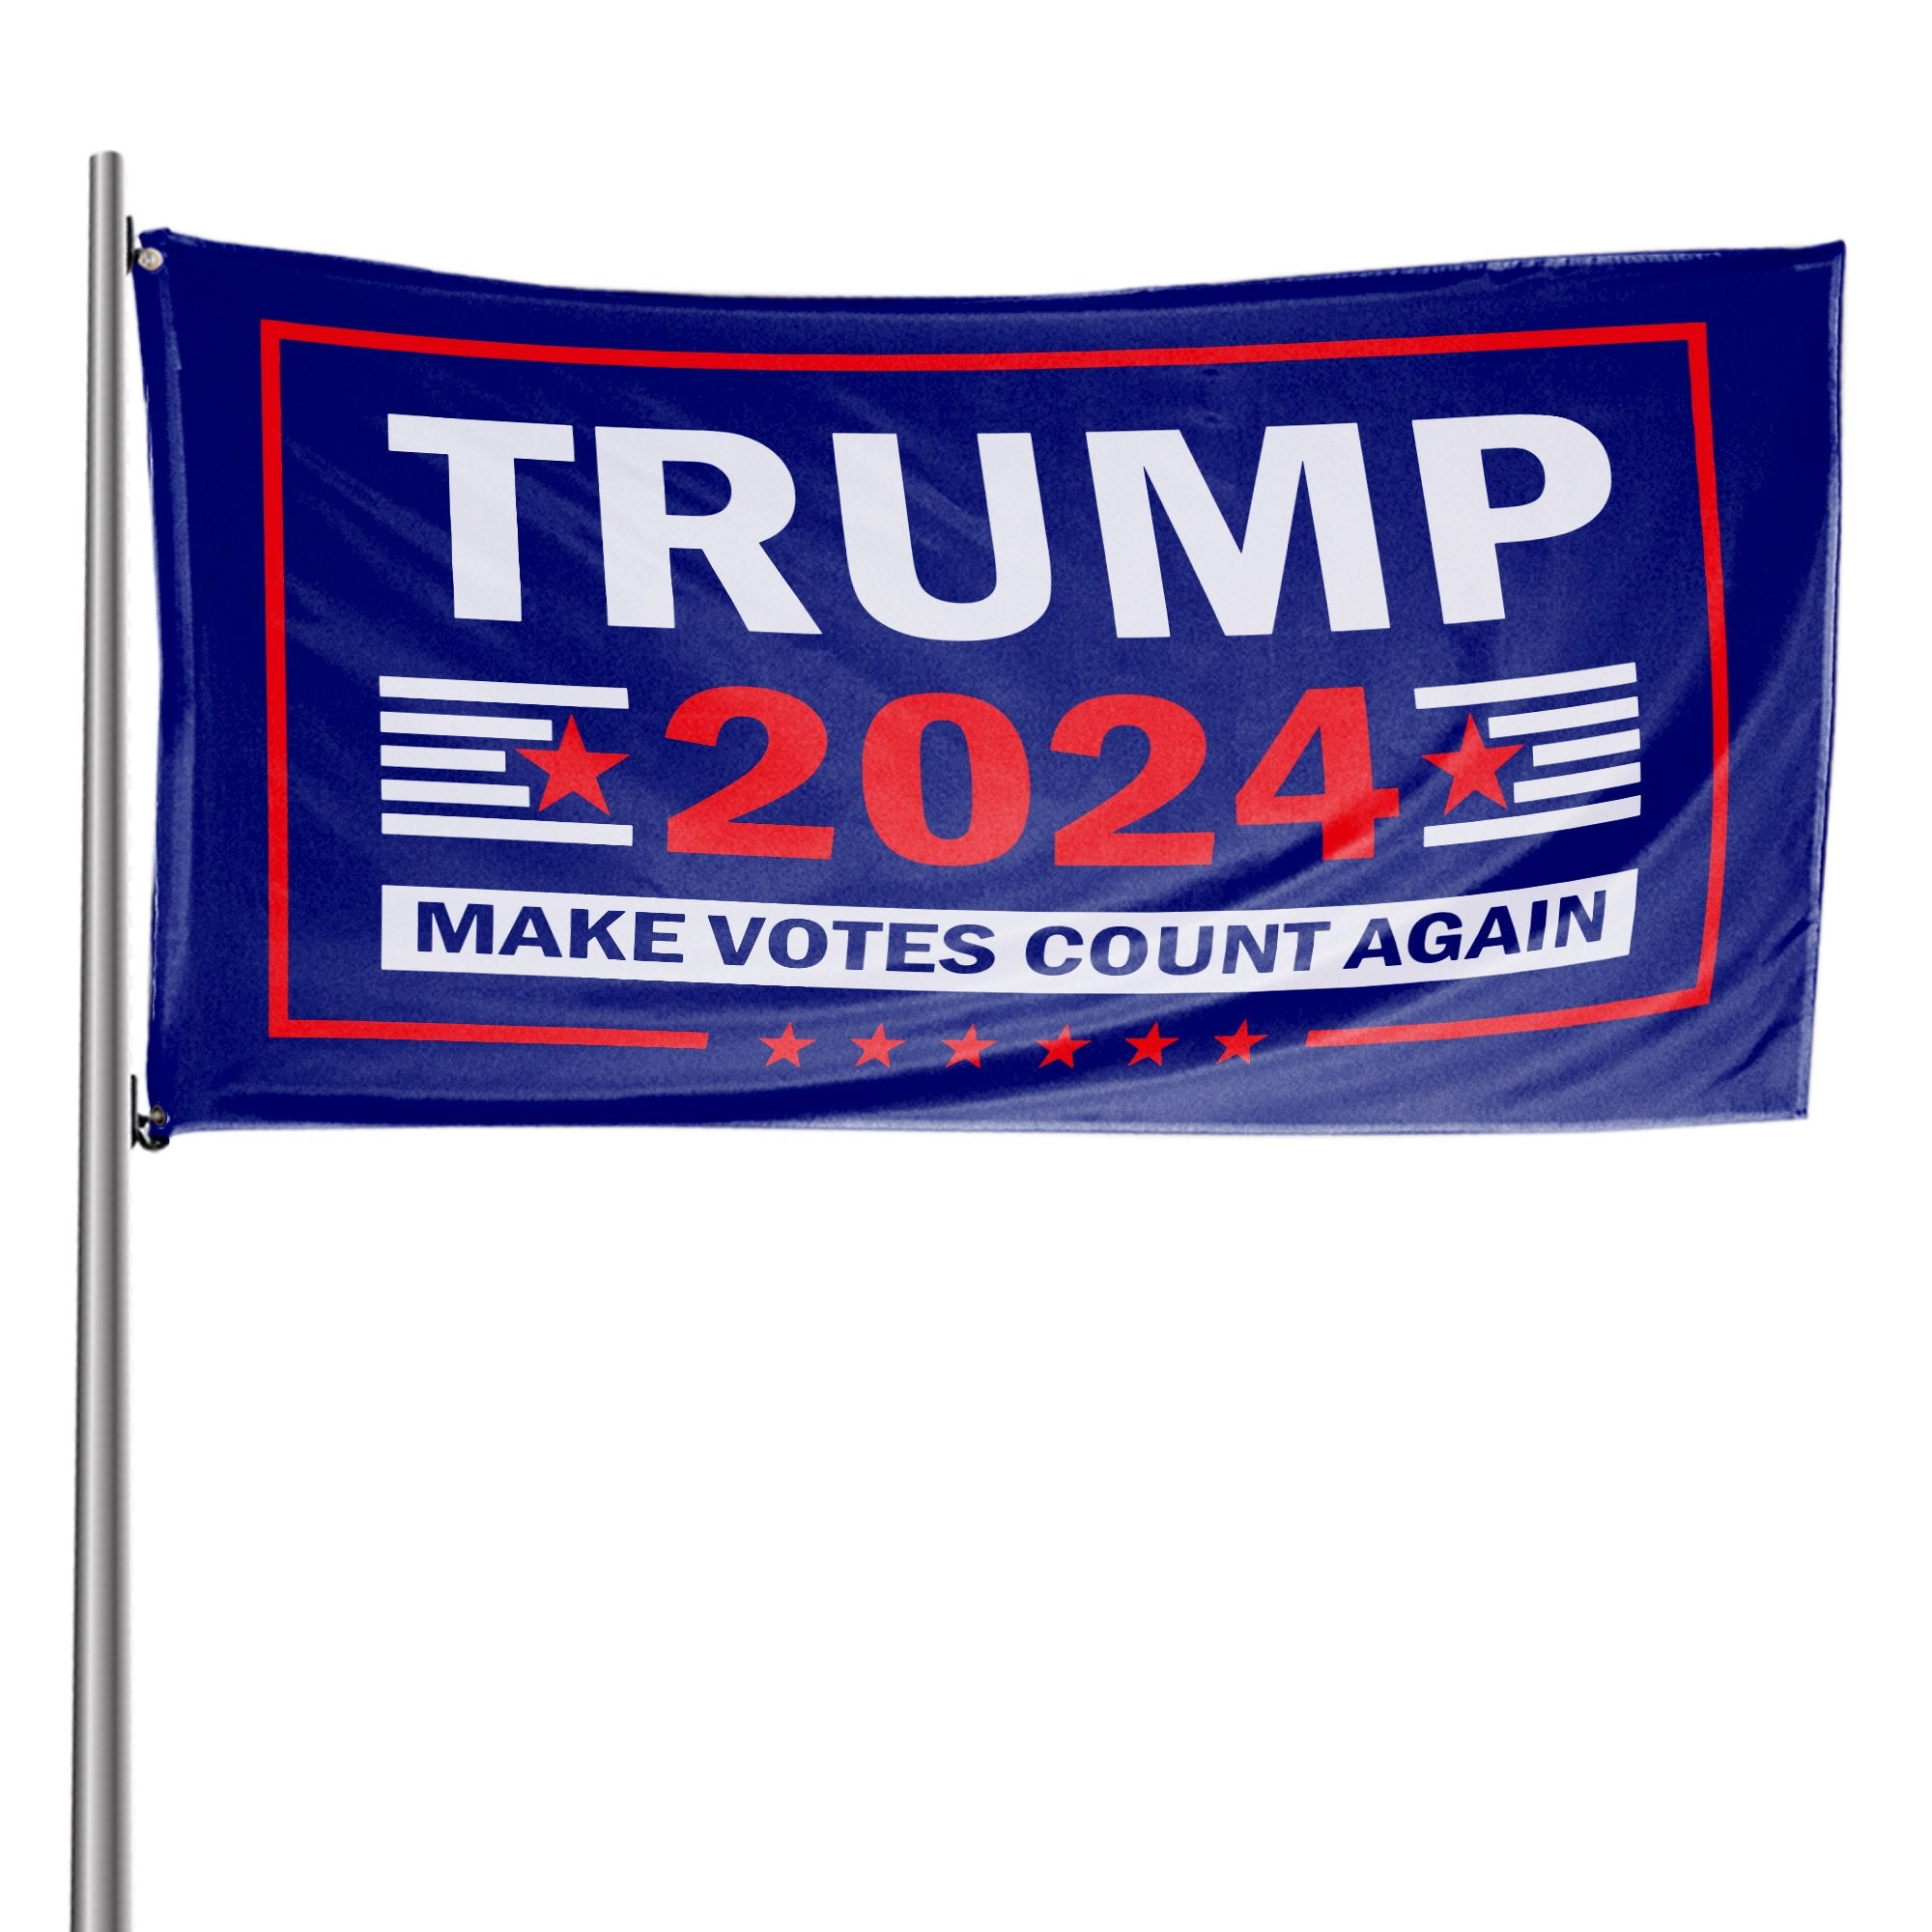 Trump 2024 Make Votes Count Again & Indiana For Trump 3 x 5 Flag Bundle